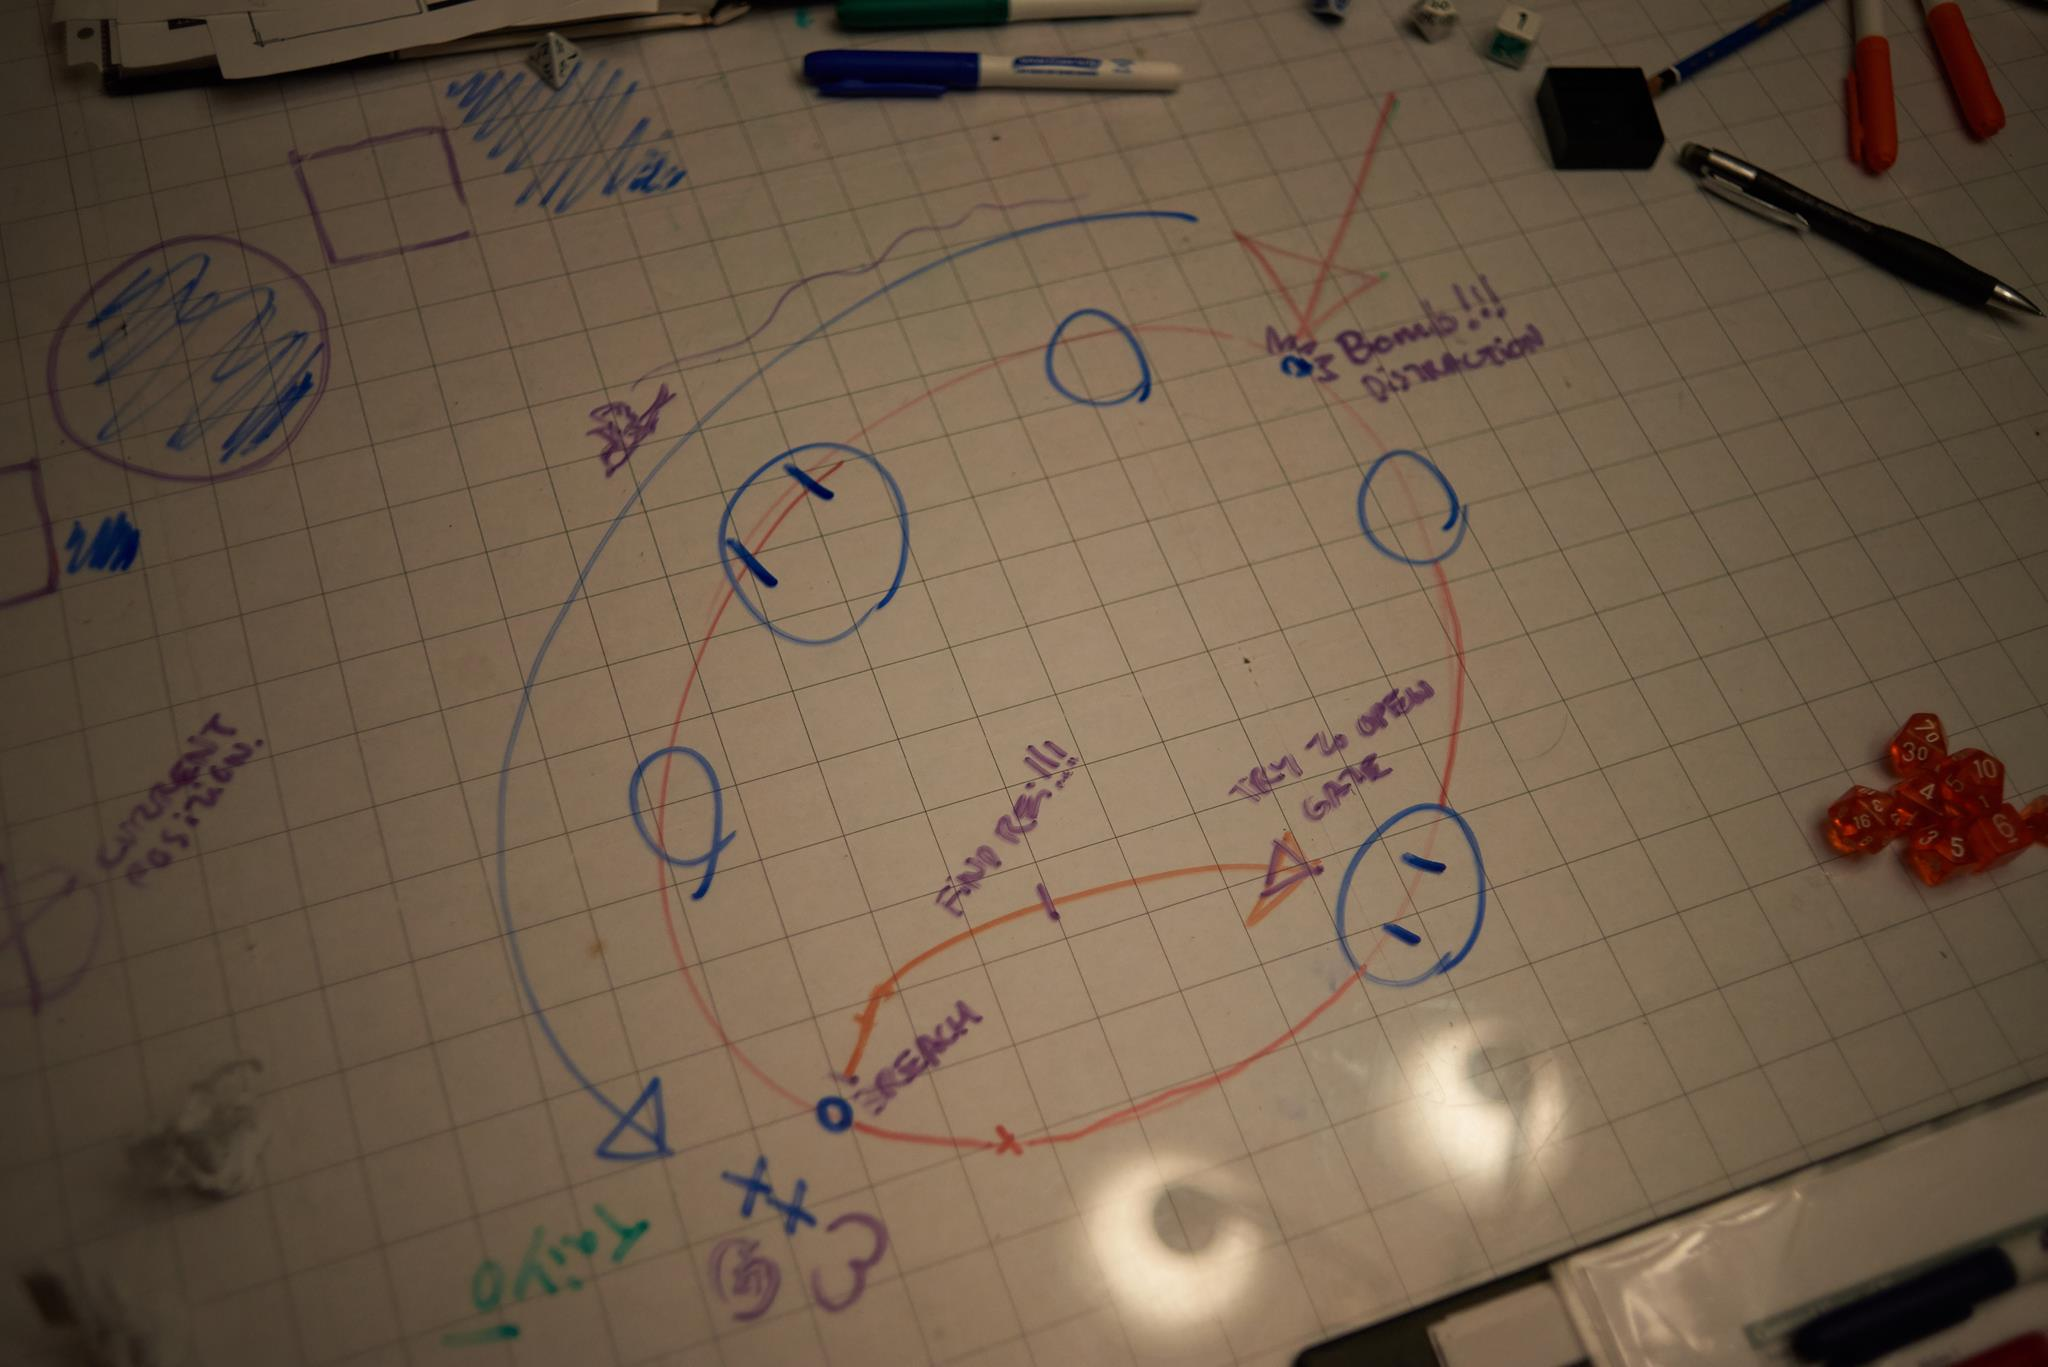 Game map: Graph paper under plexiglass drawn on with whiteboard markers. photo provided by kayetan fiett.